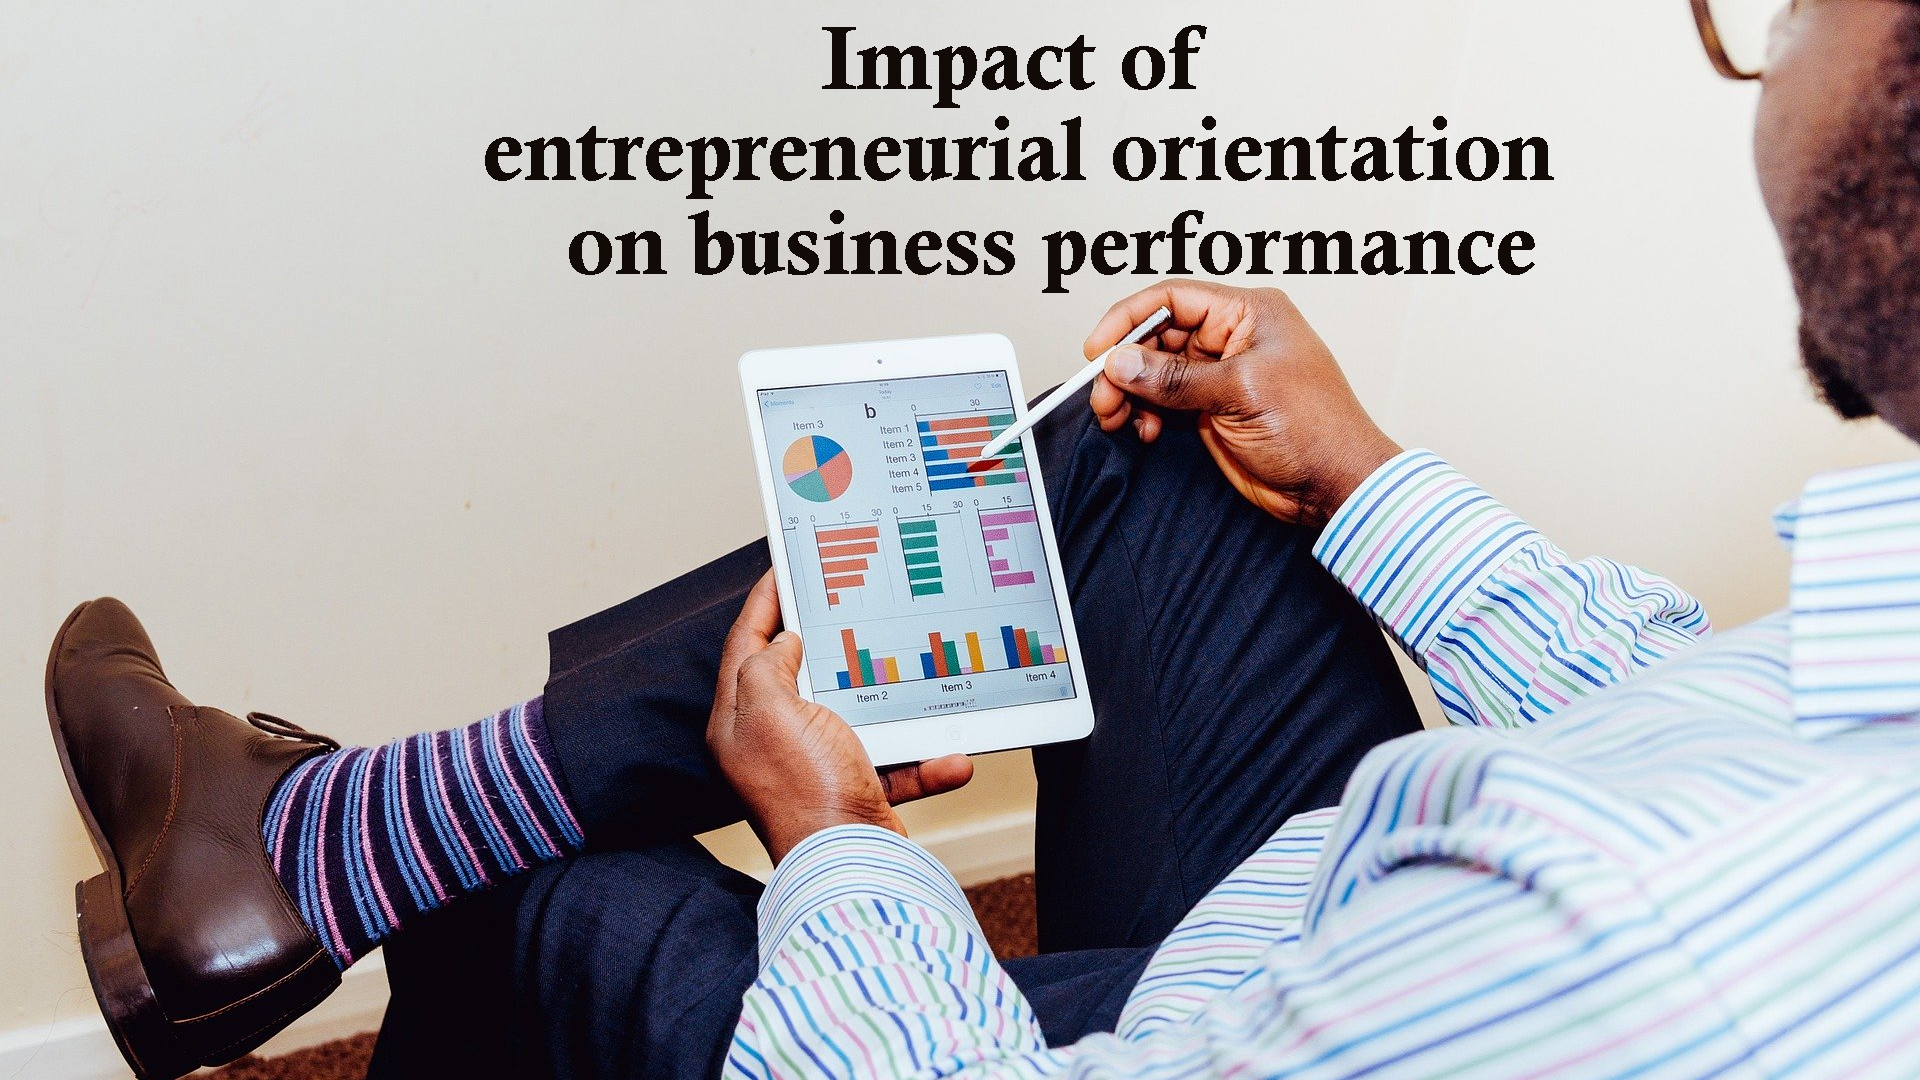 Entrepreneurial orientation and business performance